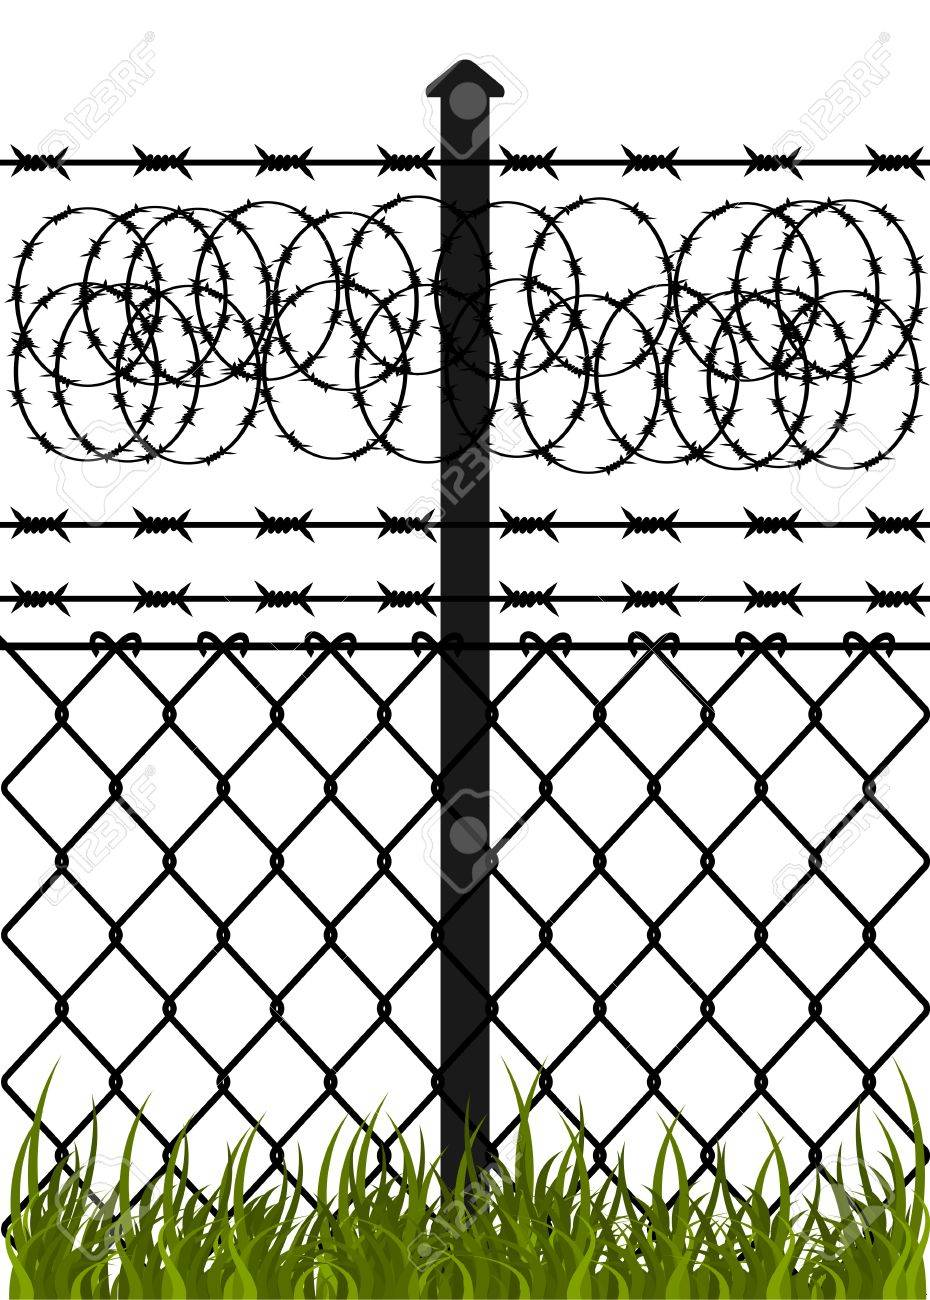 Wire fence with barbed wires  Vector illustration Stock Vector - 12496125